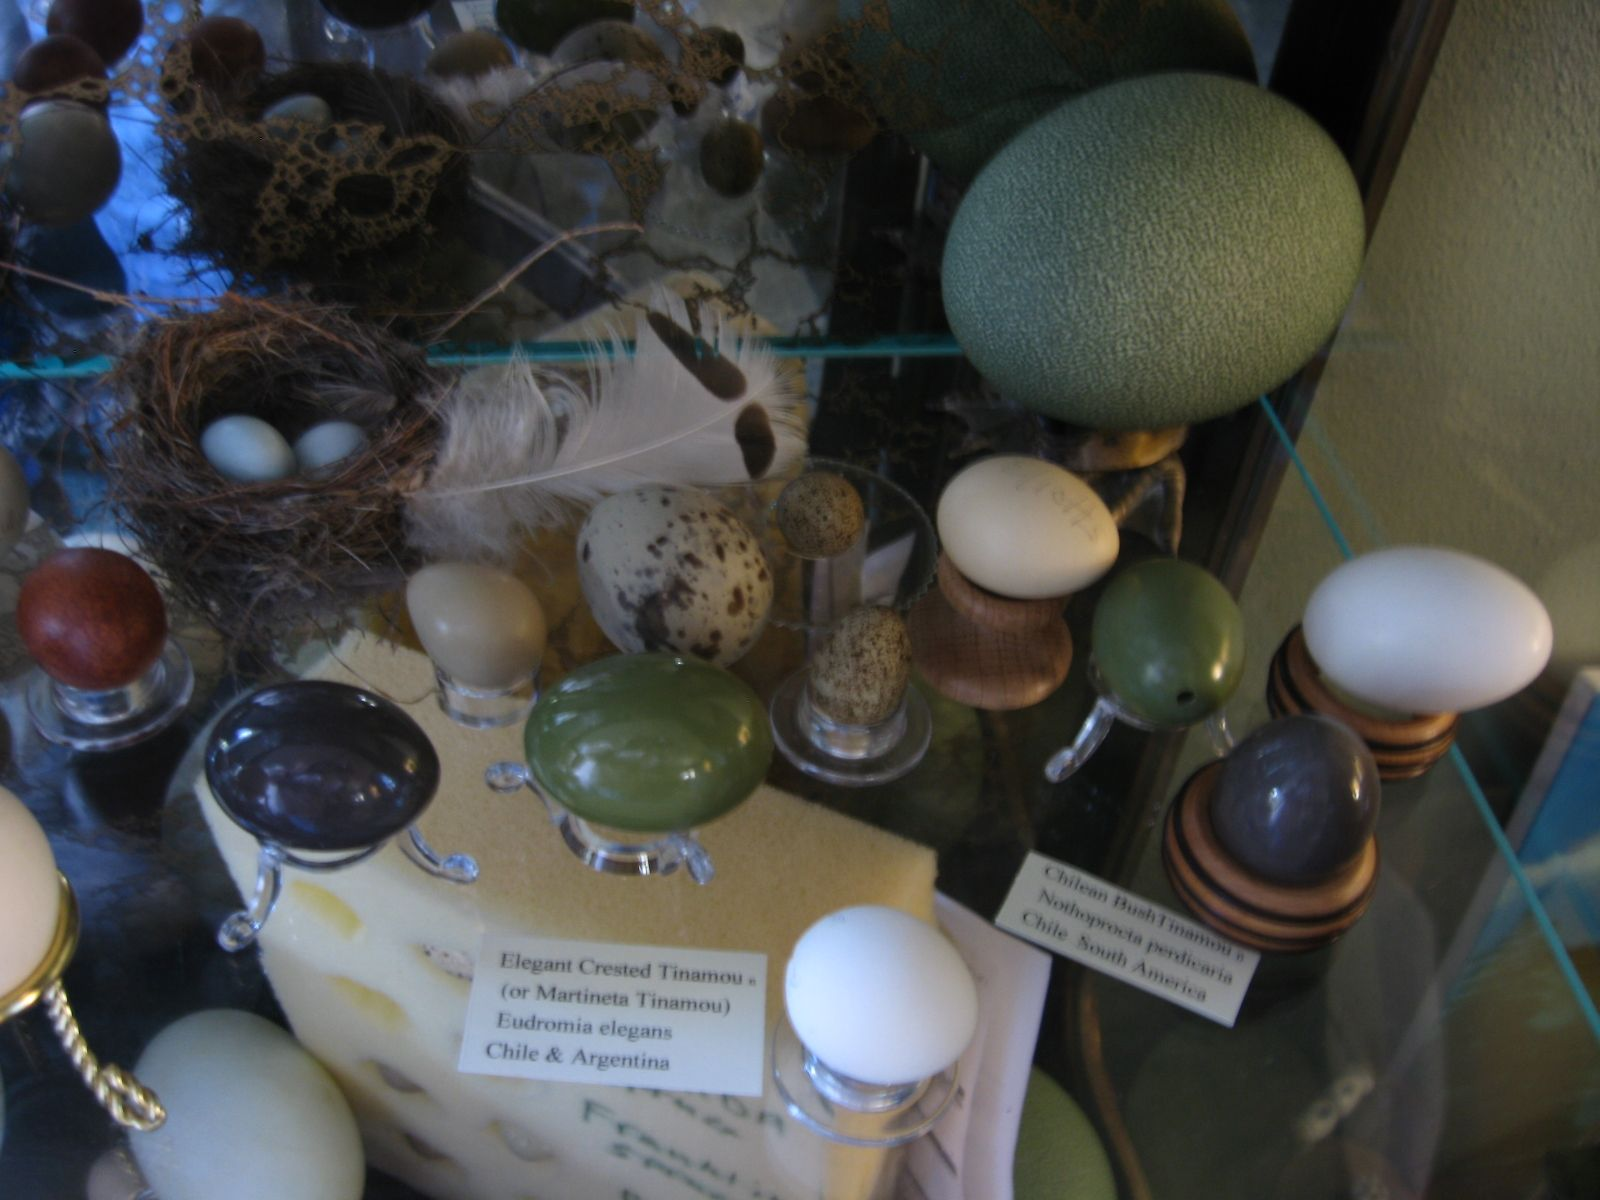 Misc Blown Eggs Including Cassowary Large Green Far Right Elegant Crested Tinamou Shinny